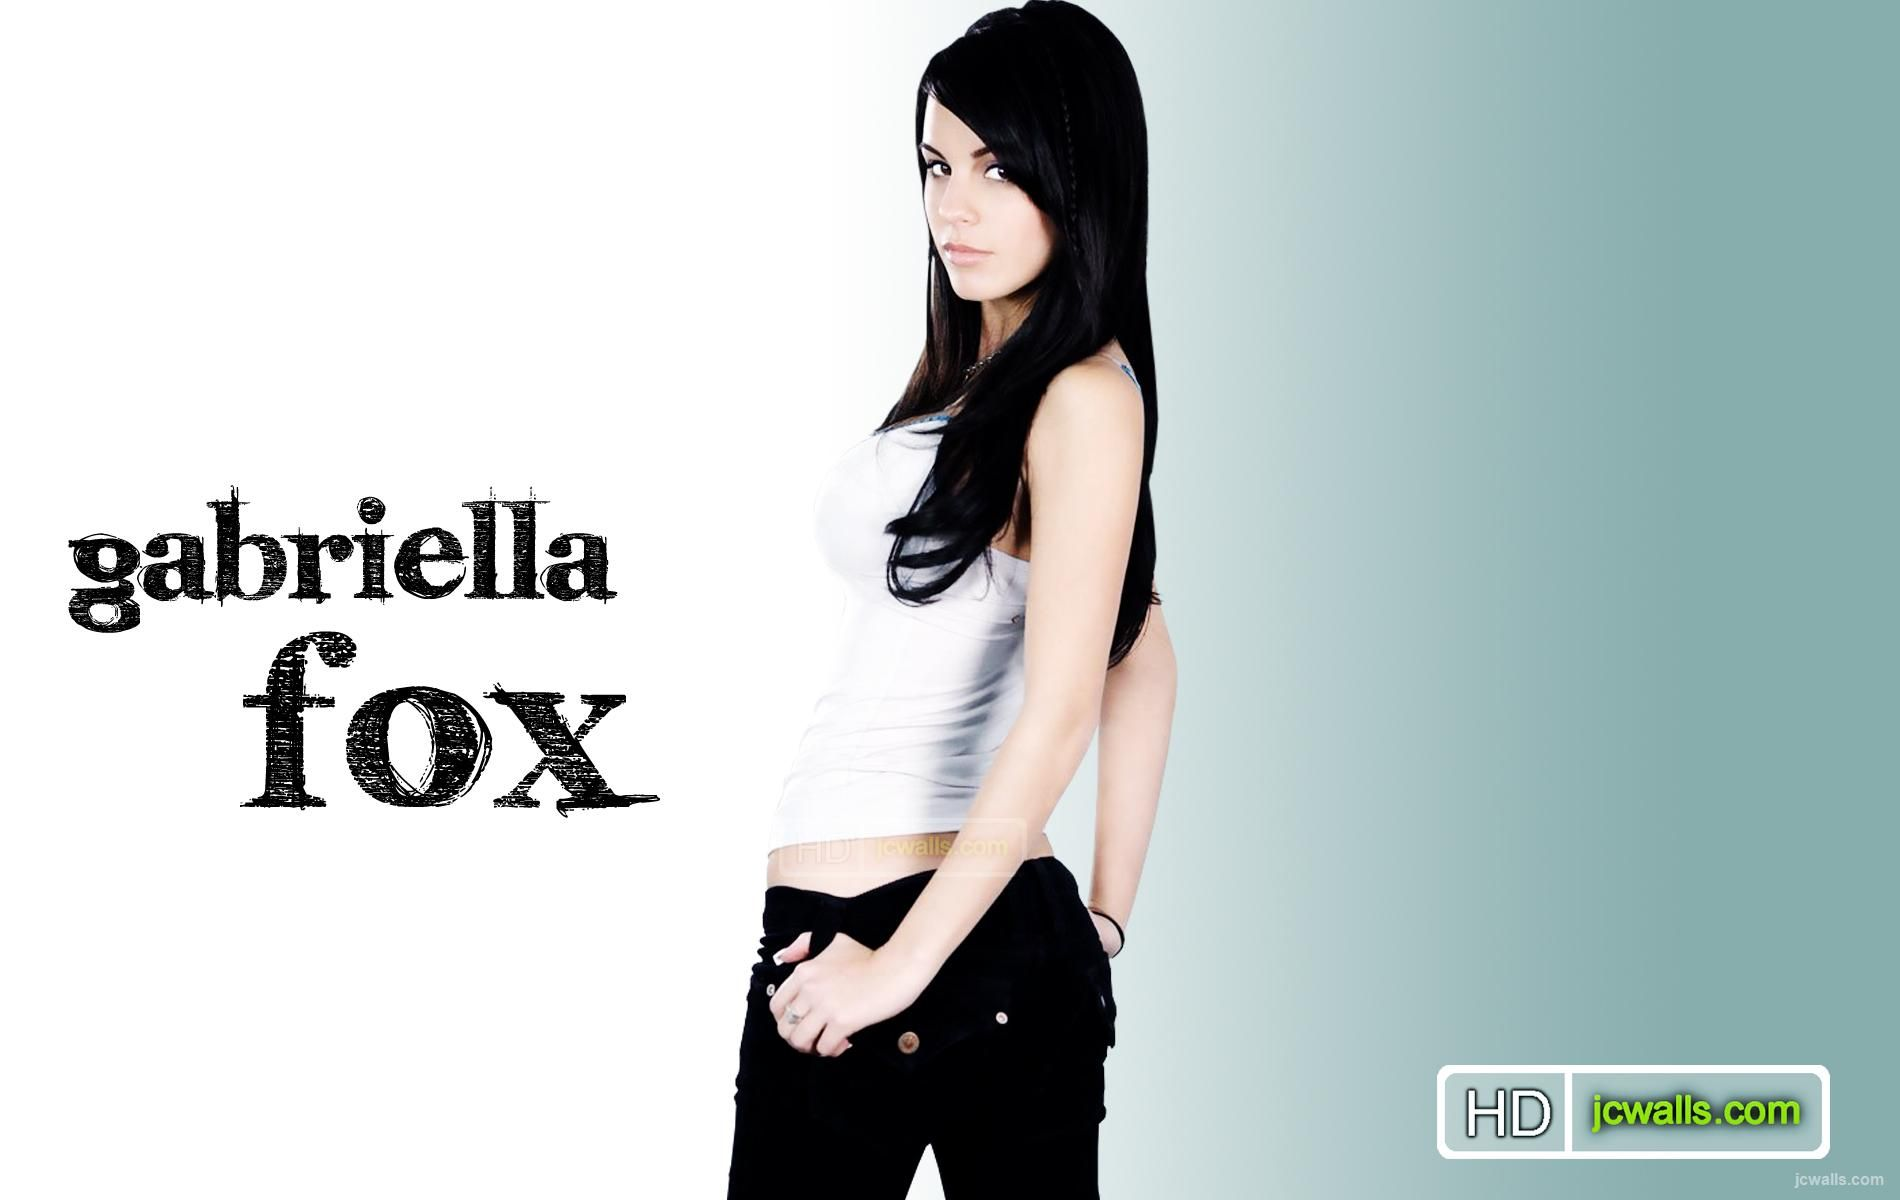 gabriella fox gabriella fox hd wallpapers gfx pinterest foxes